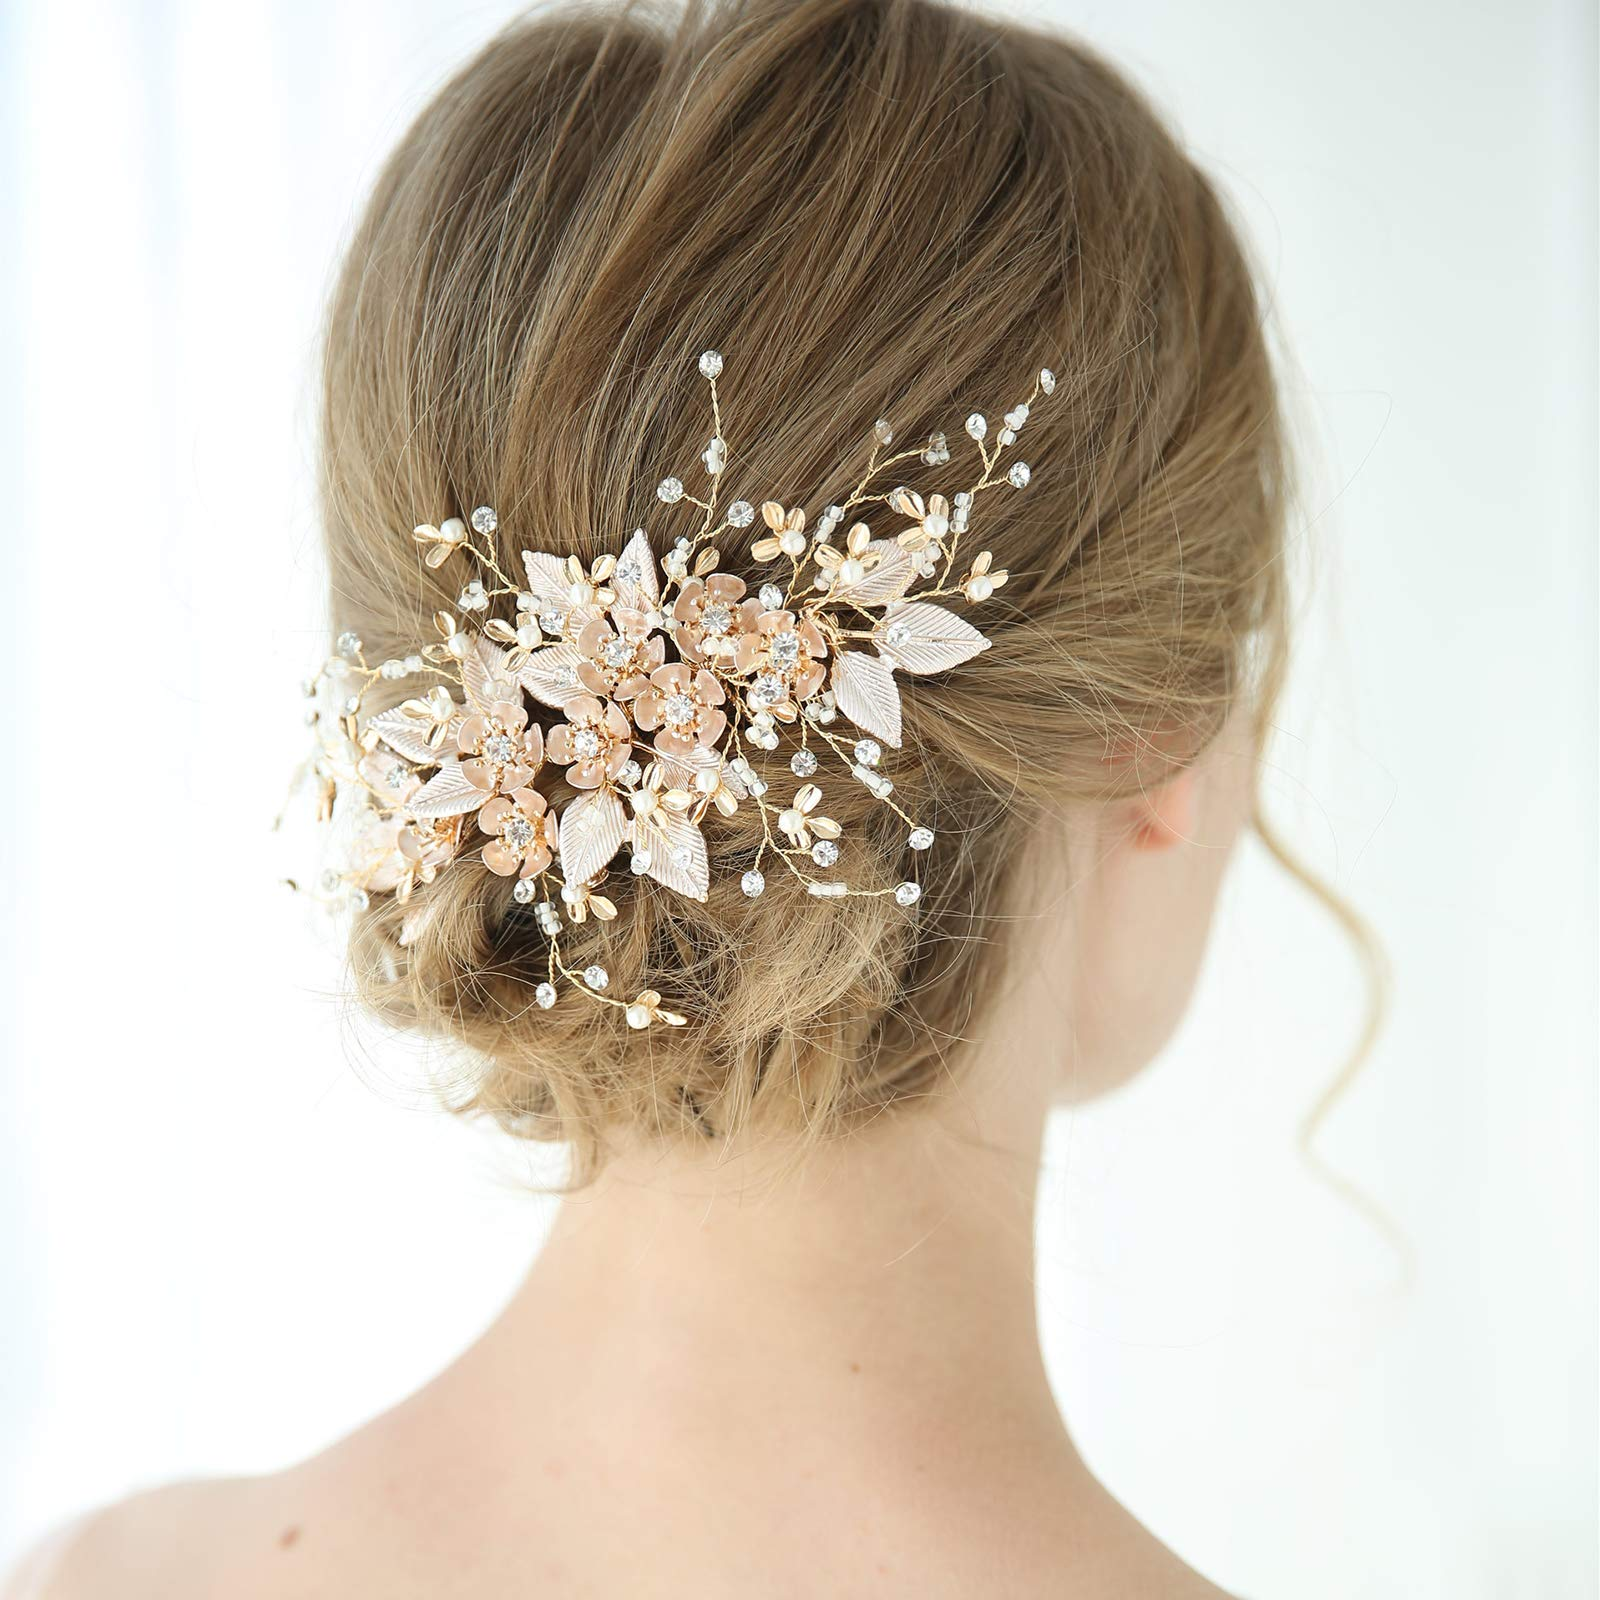 SWEETV Handmade Wedding Hair Comb Pearl Floral Leaf Bridal Hair Accessories for Brides and Bridesmaid by SWEETV